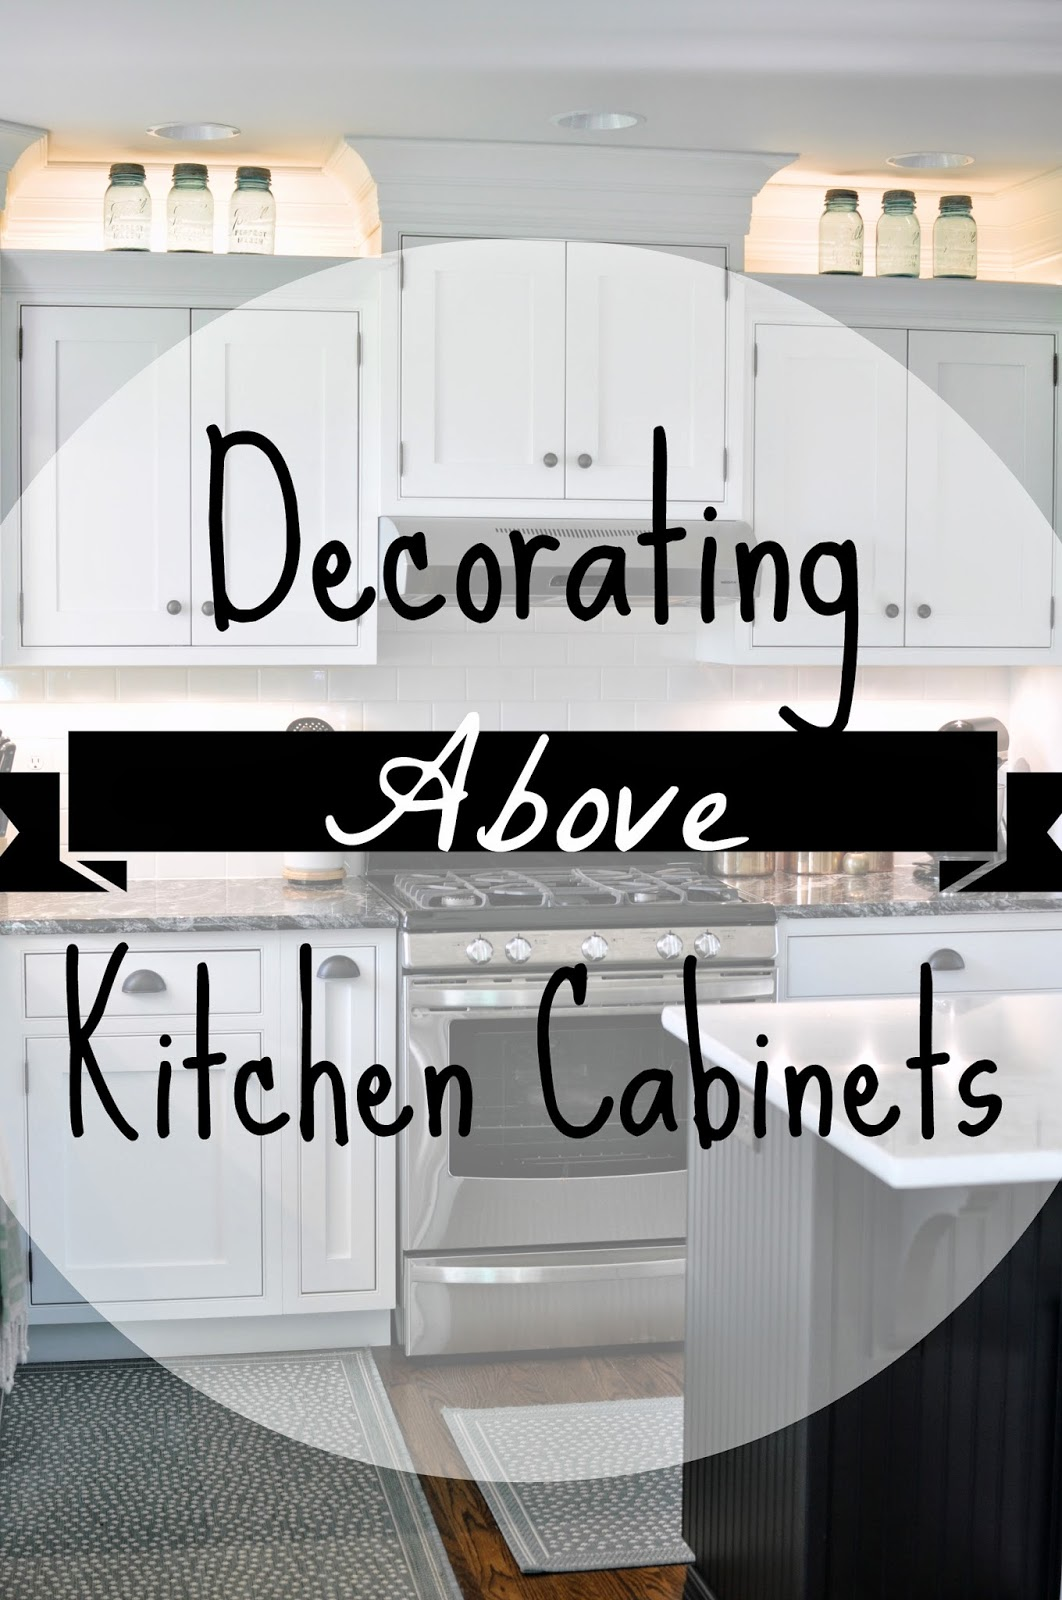 Ideas For Decorating Above Kitchen Cabinets A Nurse And A Nerd Decorating Above The Cabinets